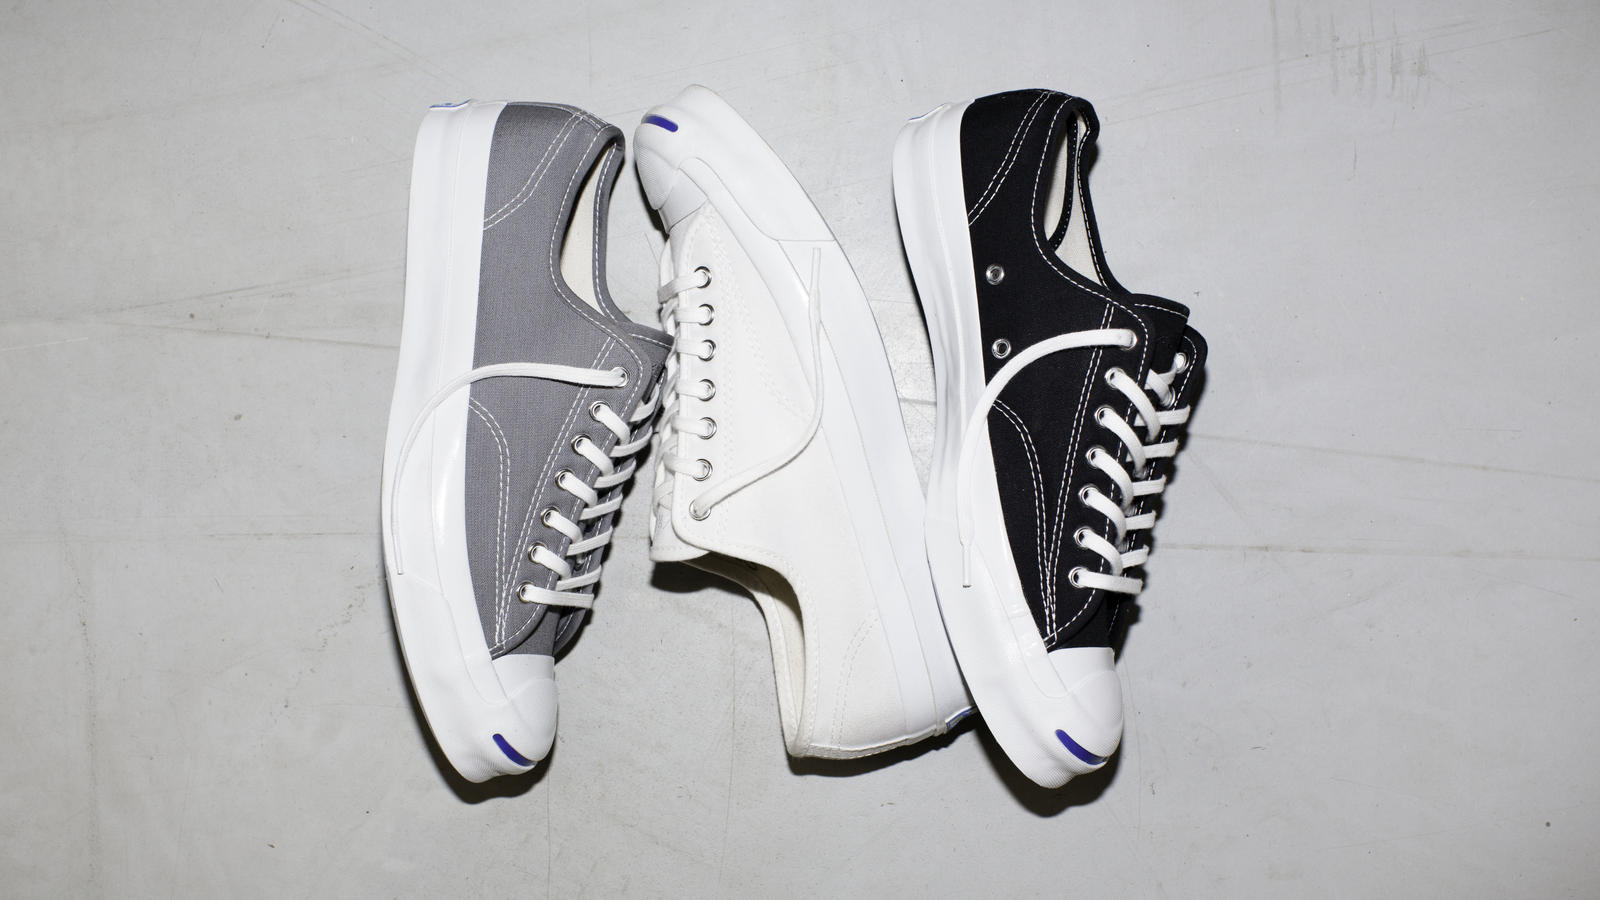 bbf0b01e57d241 CONVERSE DEBUTS THE JACK PURCELL SIGNATURE SNEAKER - Nike News